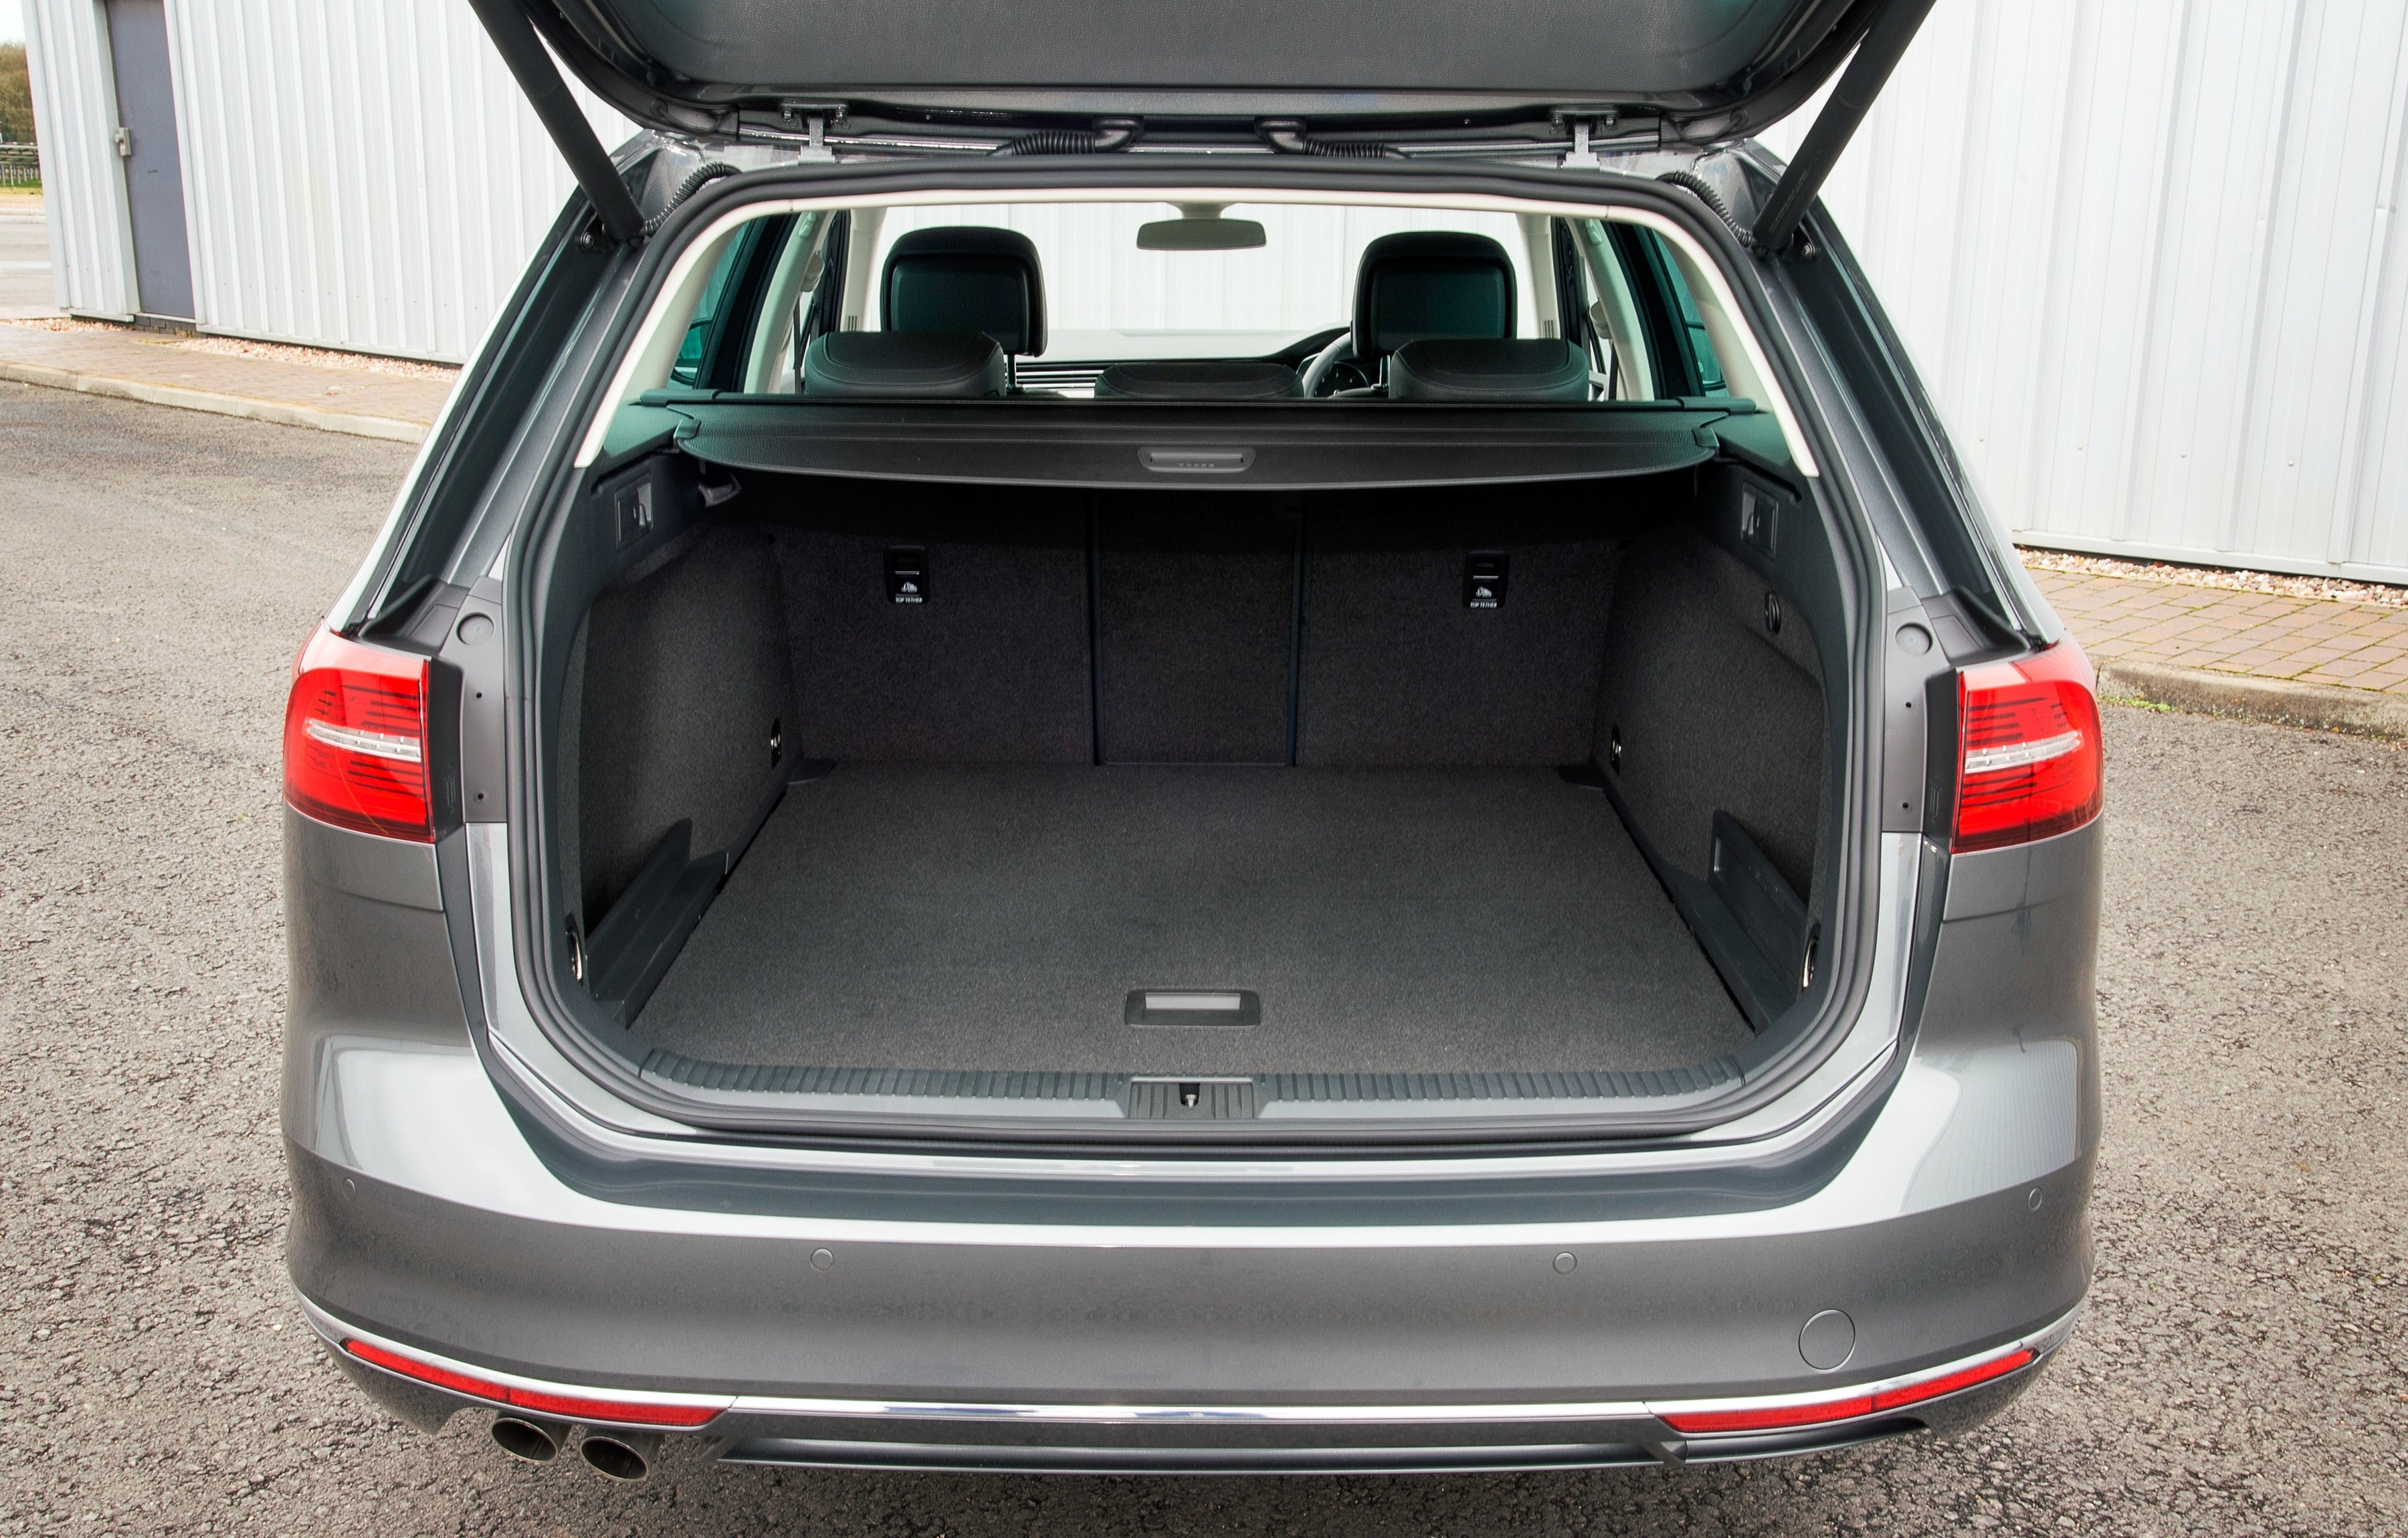 Vw Passat And Estate Sizes And Dimensions Guide Carwow